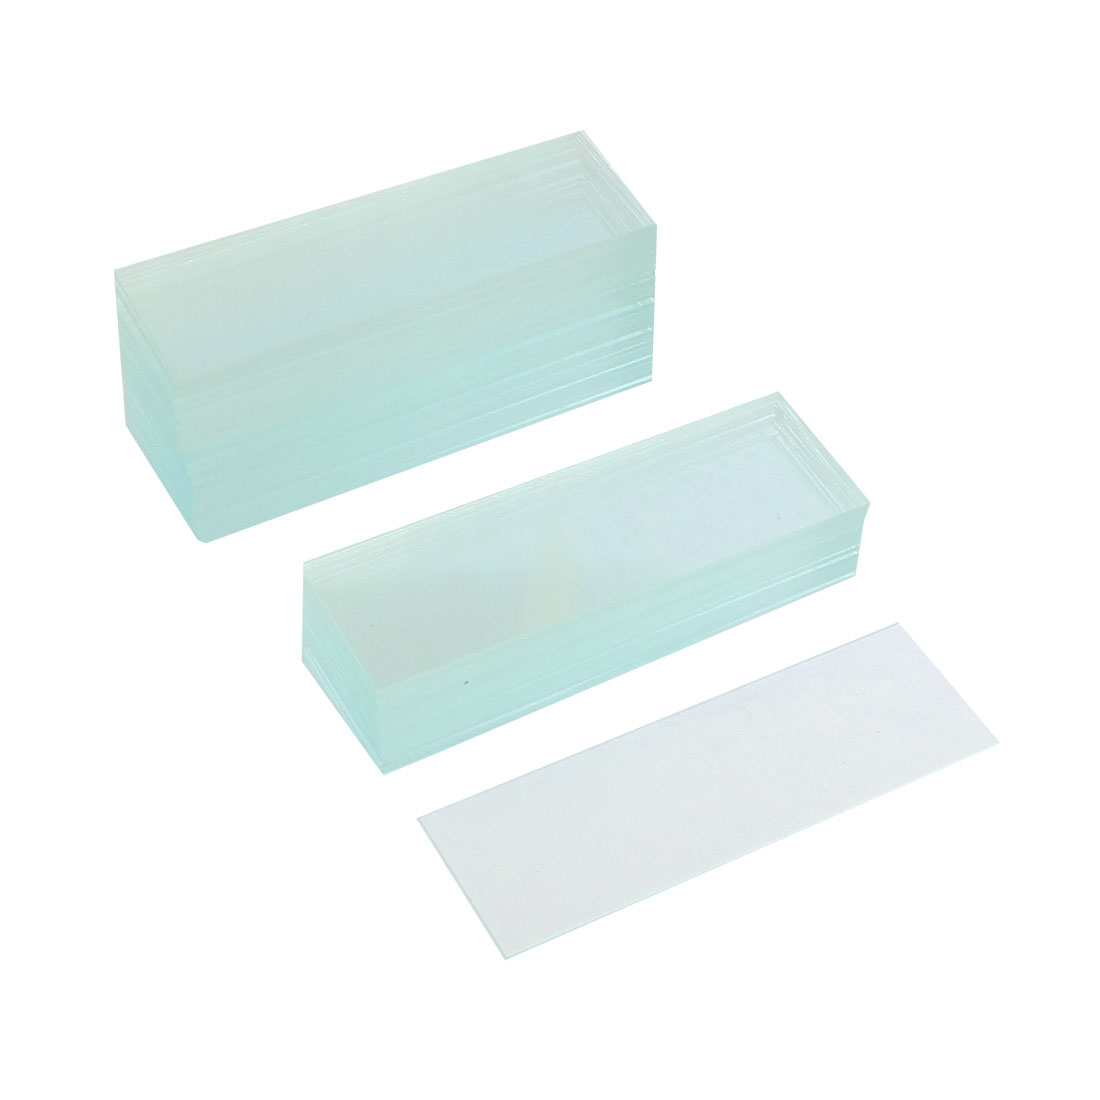 "50 Pcs Pre-cleaned Microscope Blank Glass Slides 1""x3"""